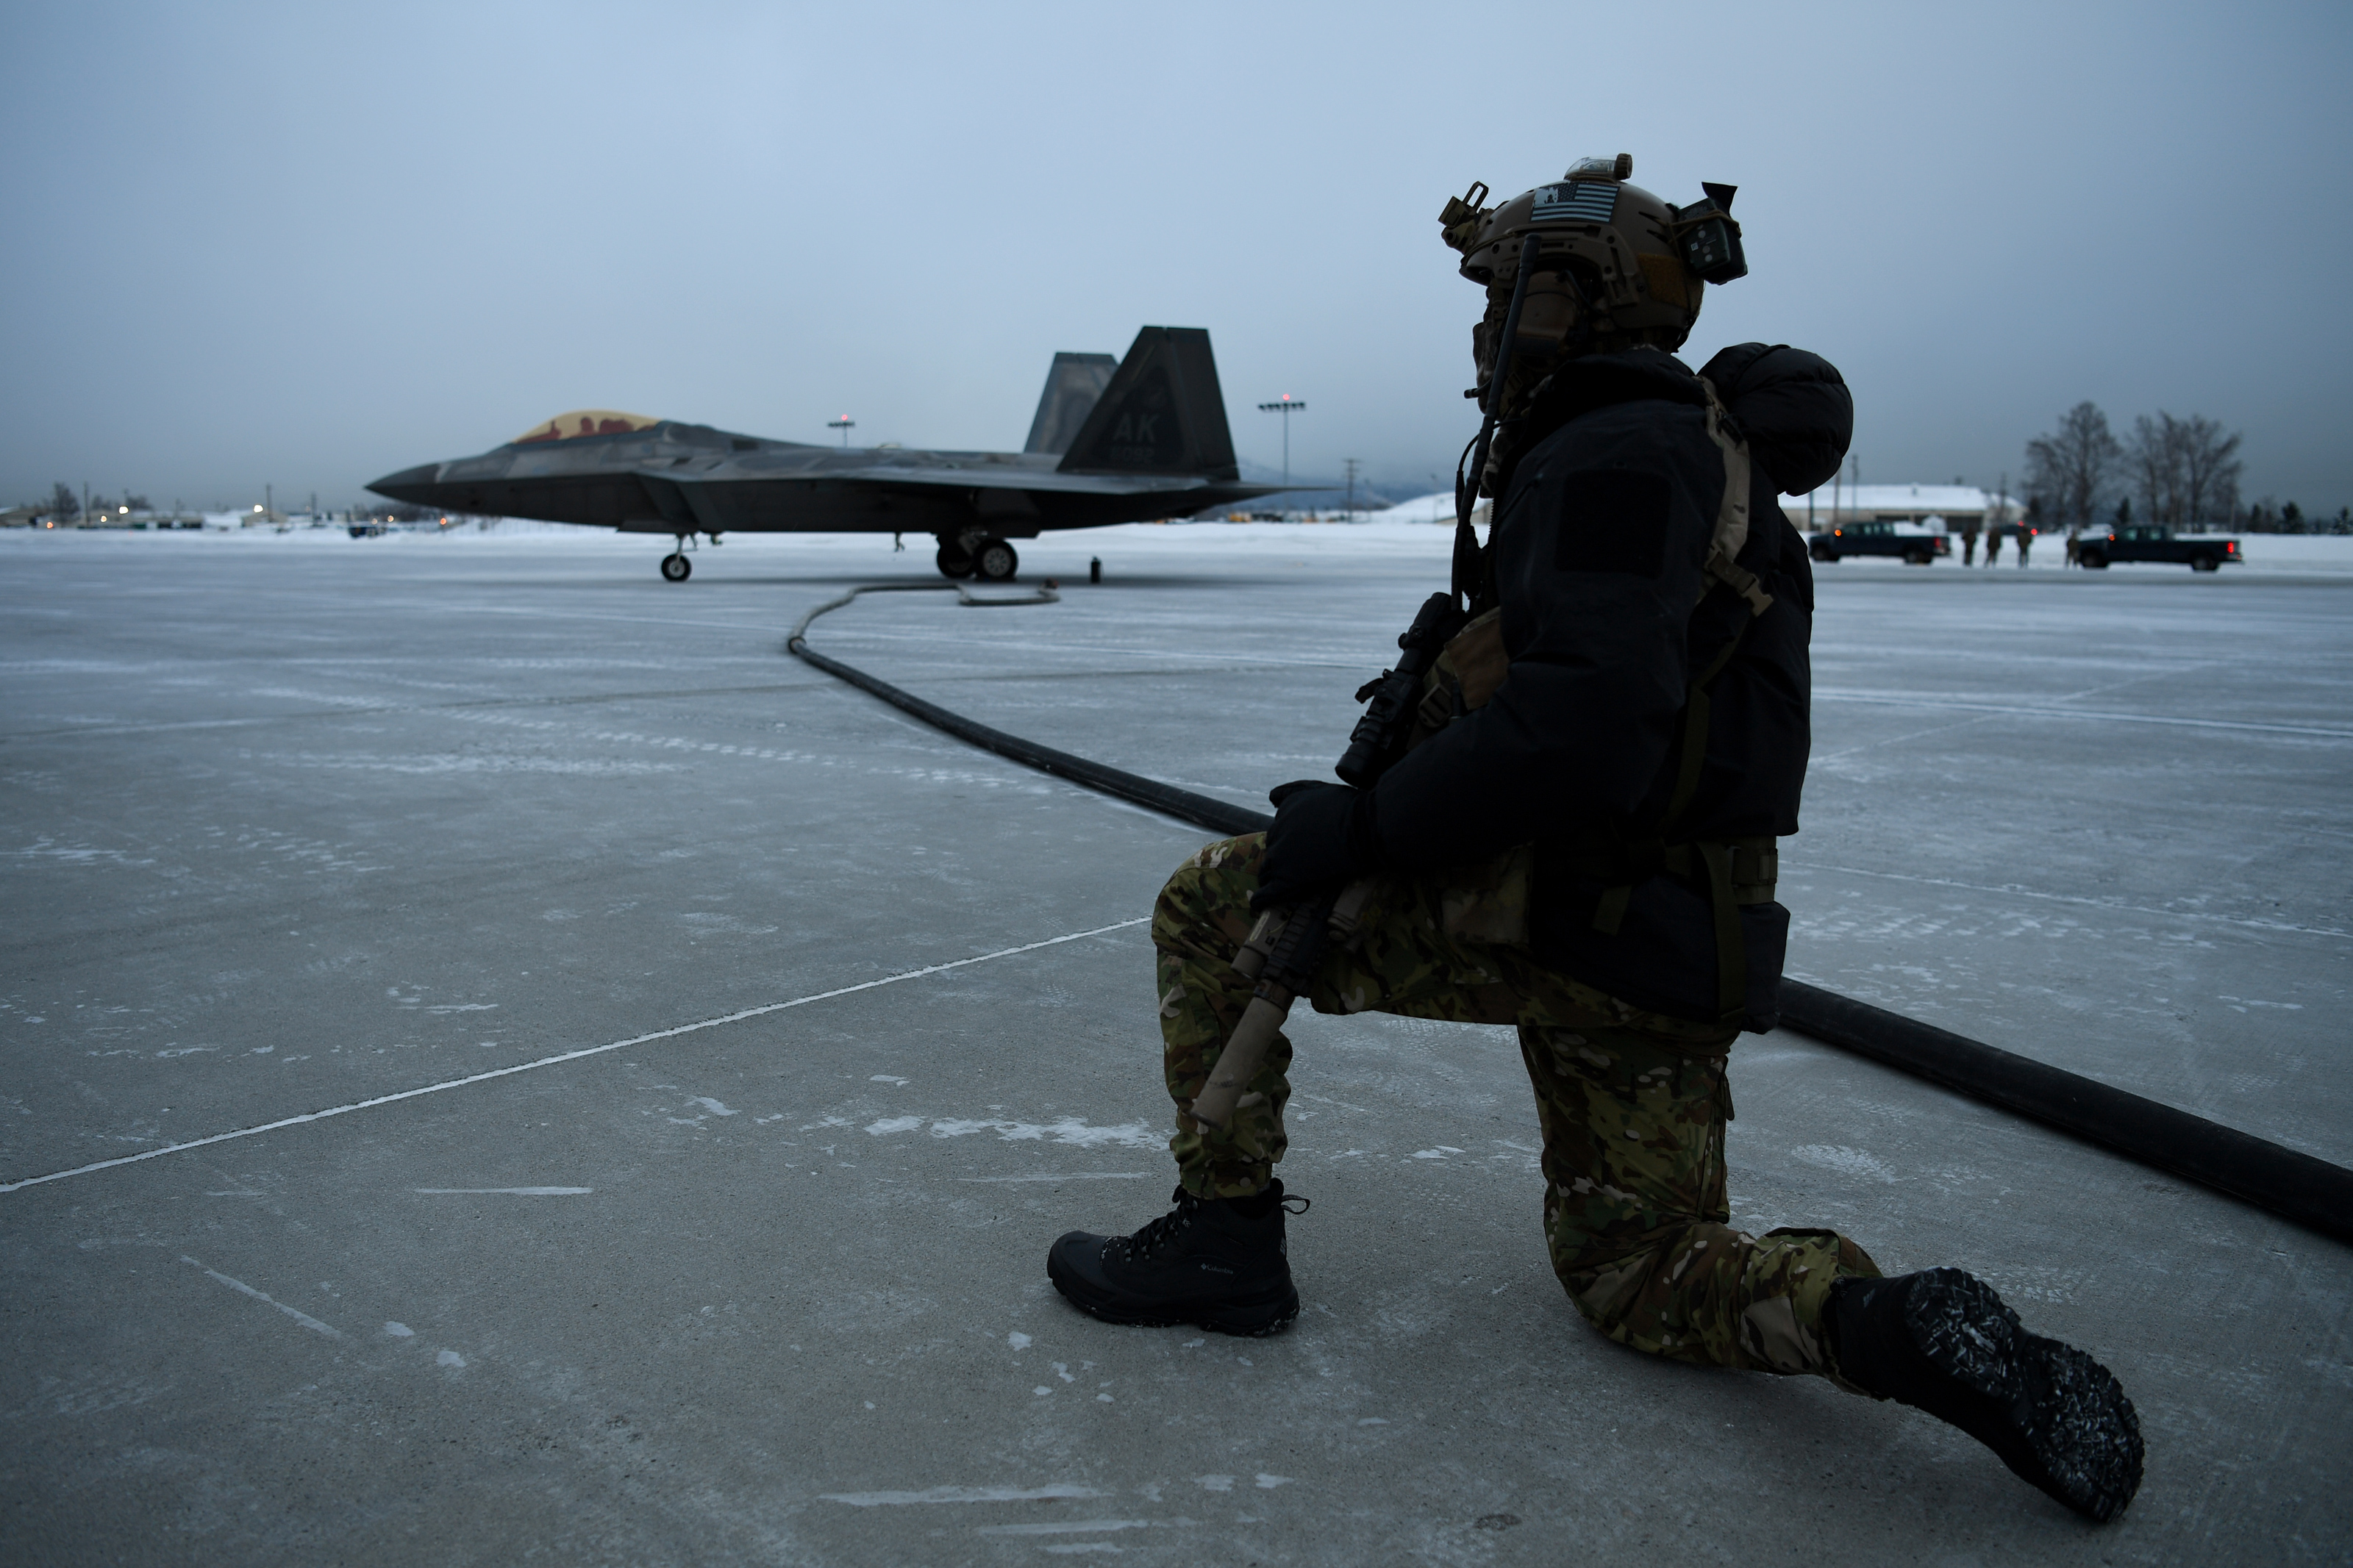 F-22 Stealth Fighters Make History with Extreme Cold-Weather Remote Refueling